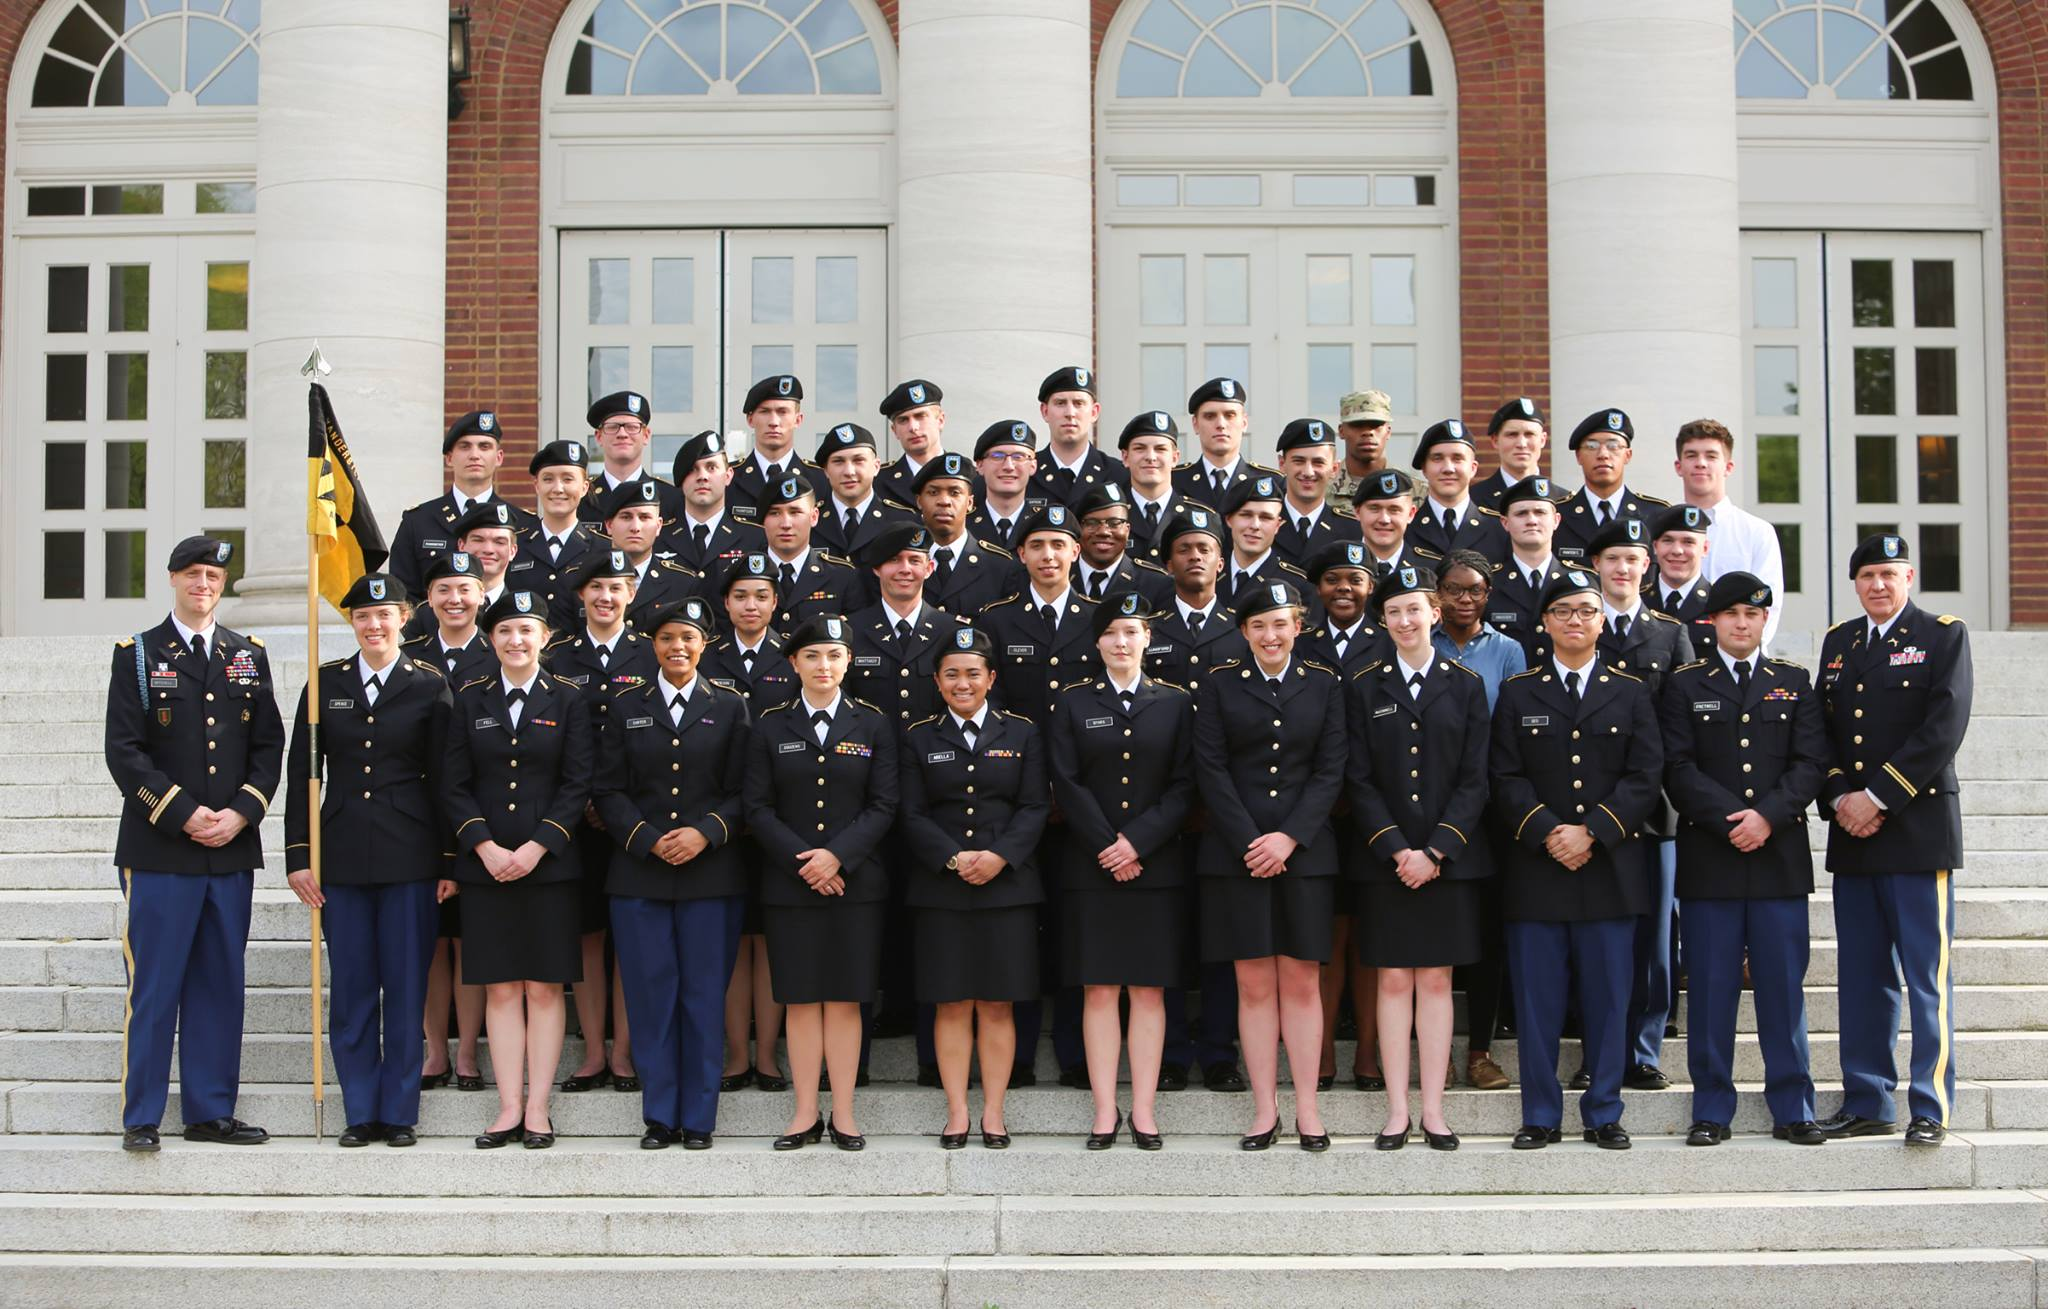 Members of Army ROTC at Vanderbilt in front of the Wyatt Center.